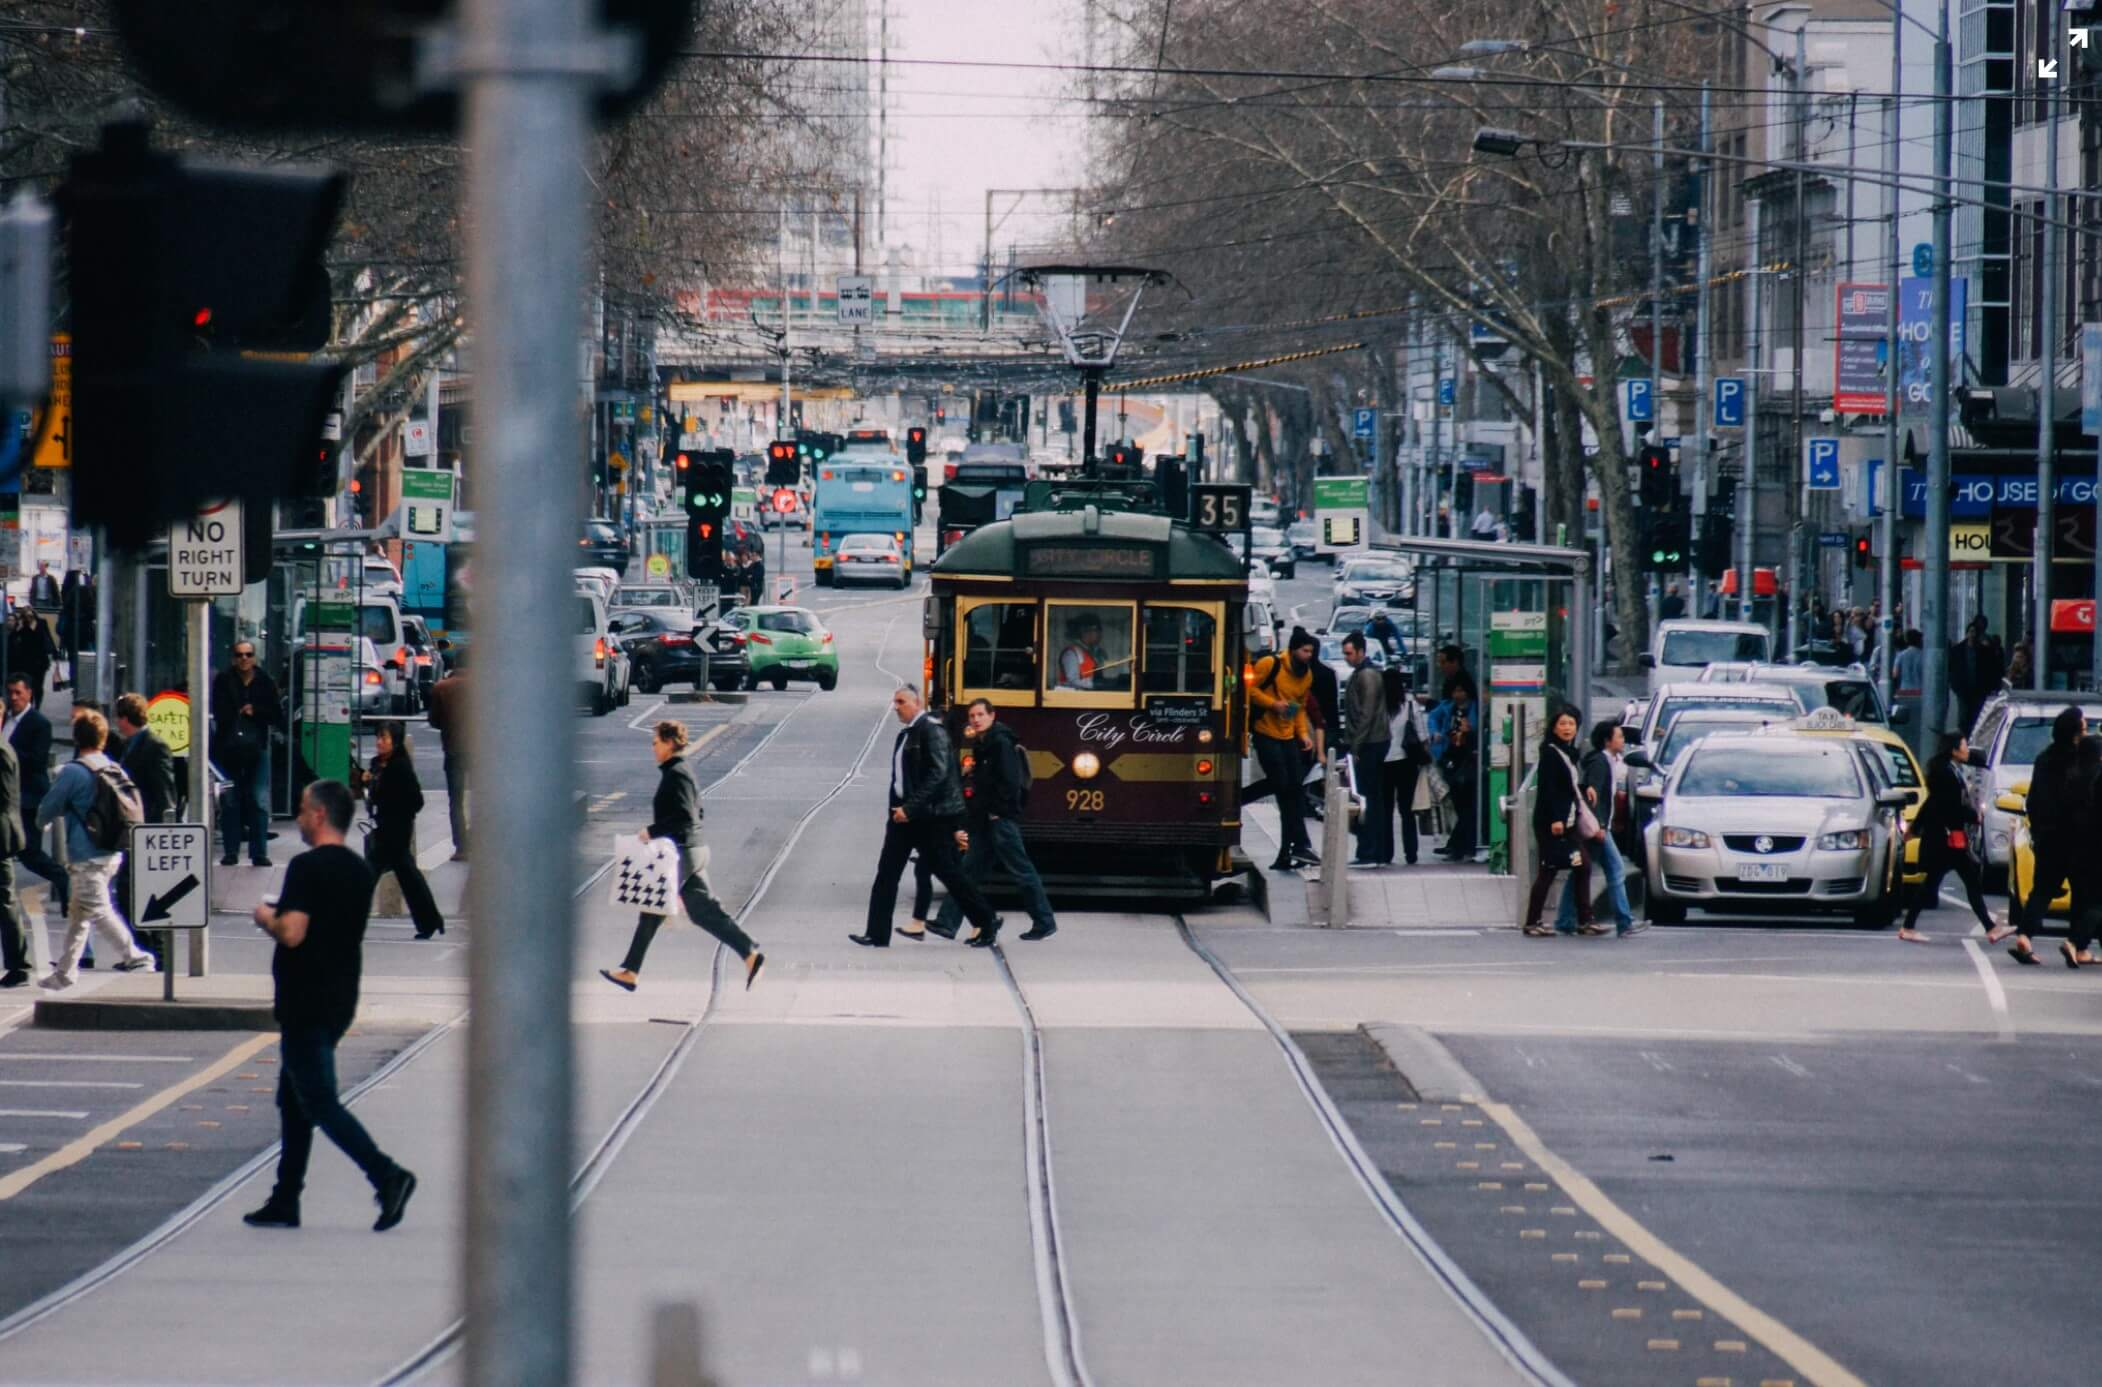 Hustle and Bustle of Melbourne Street with Tram